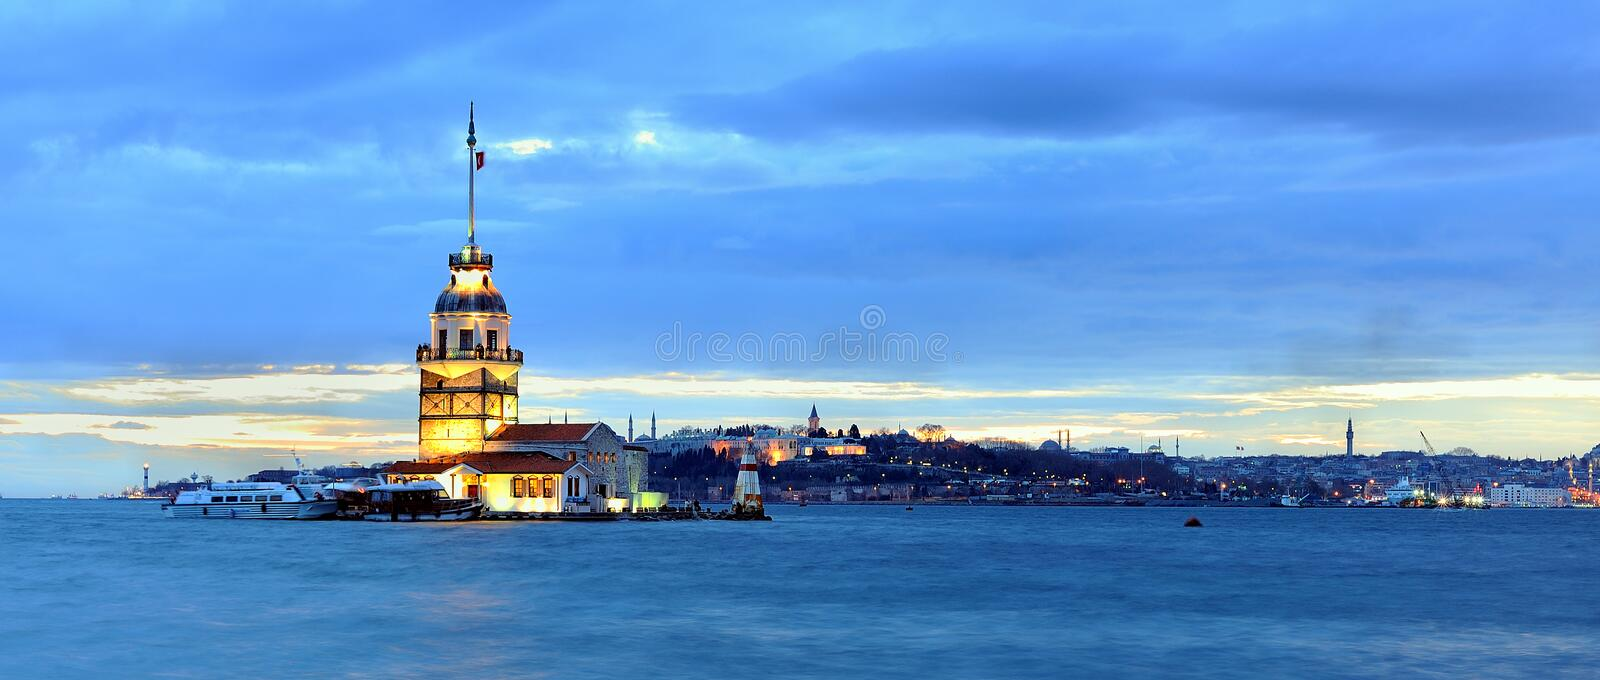 Download Maiden Tower Panaromic stock image. Image of panorama - 10851977